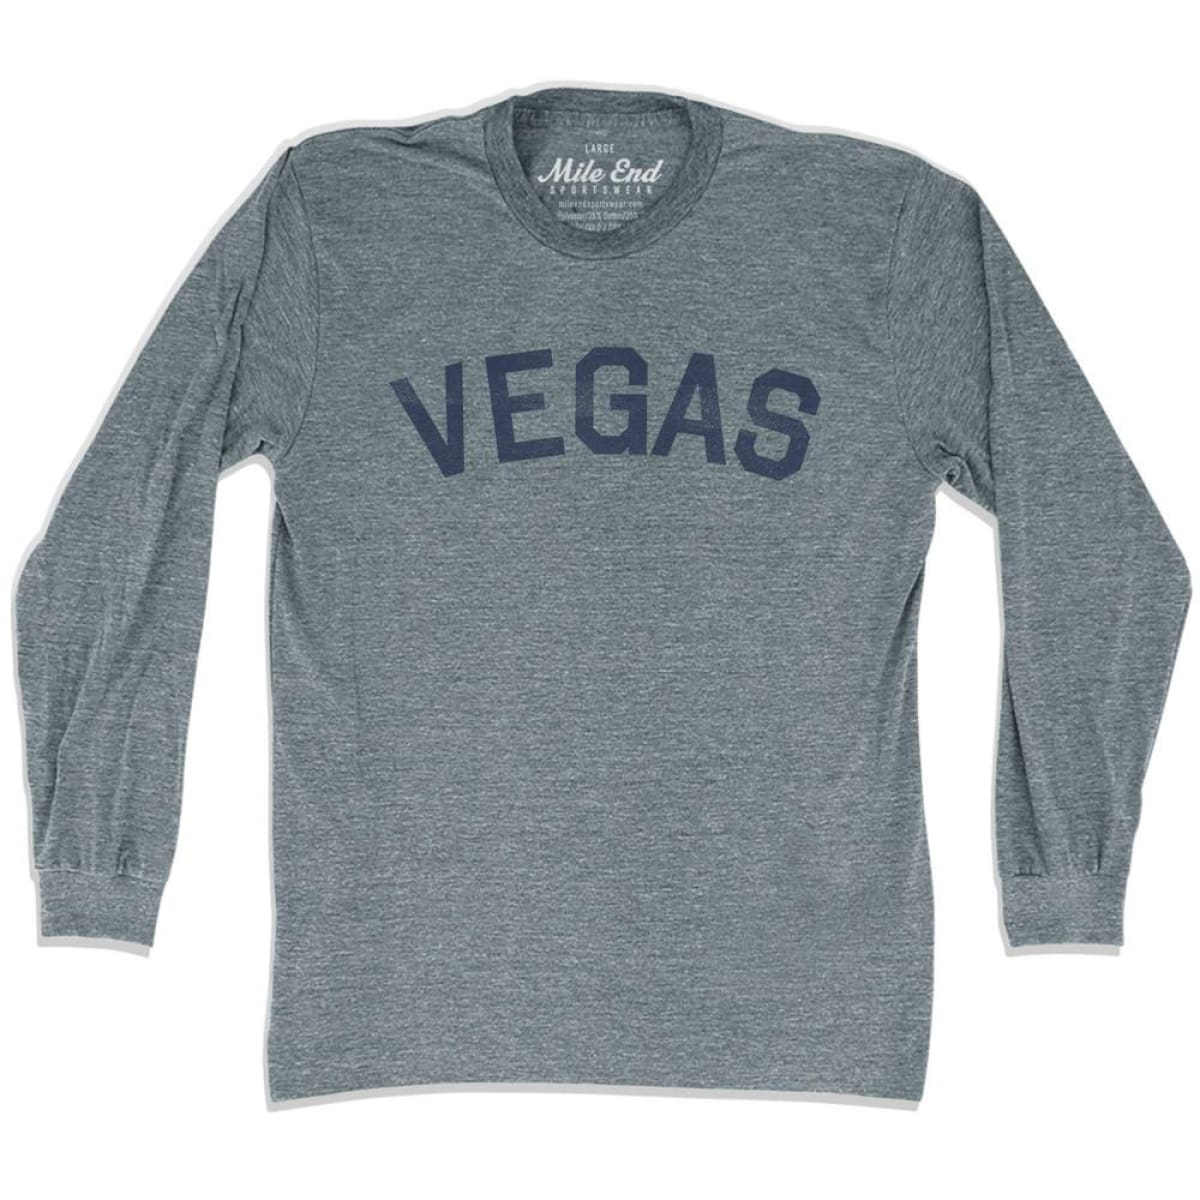 Vegas City Vintage Long Sleeve T-Shirt - Athletic Grey / Adult X-Small - Mile End City